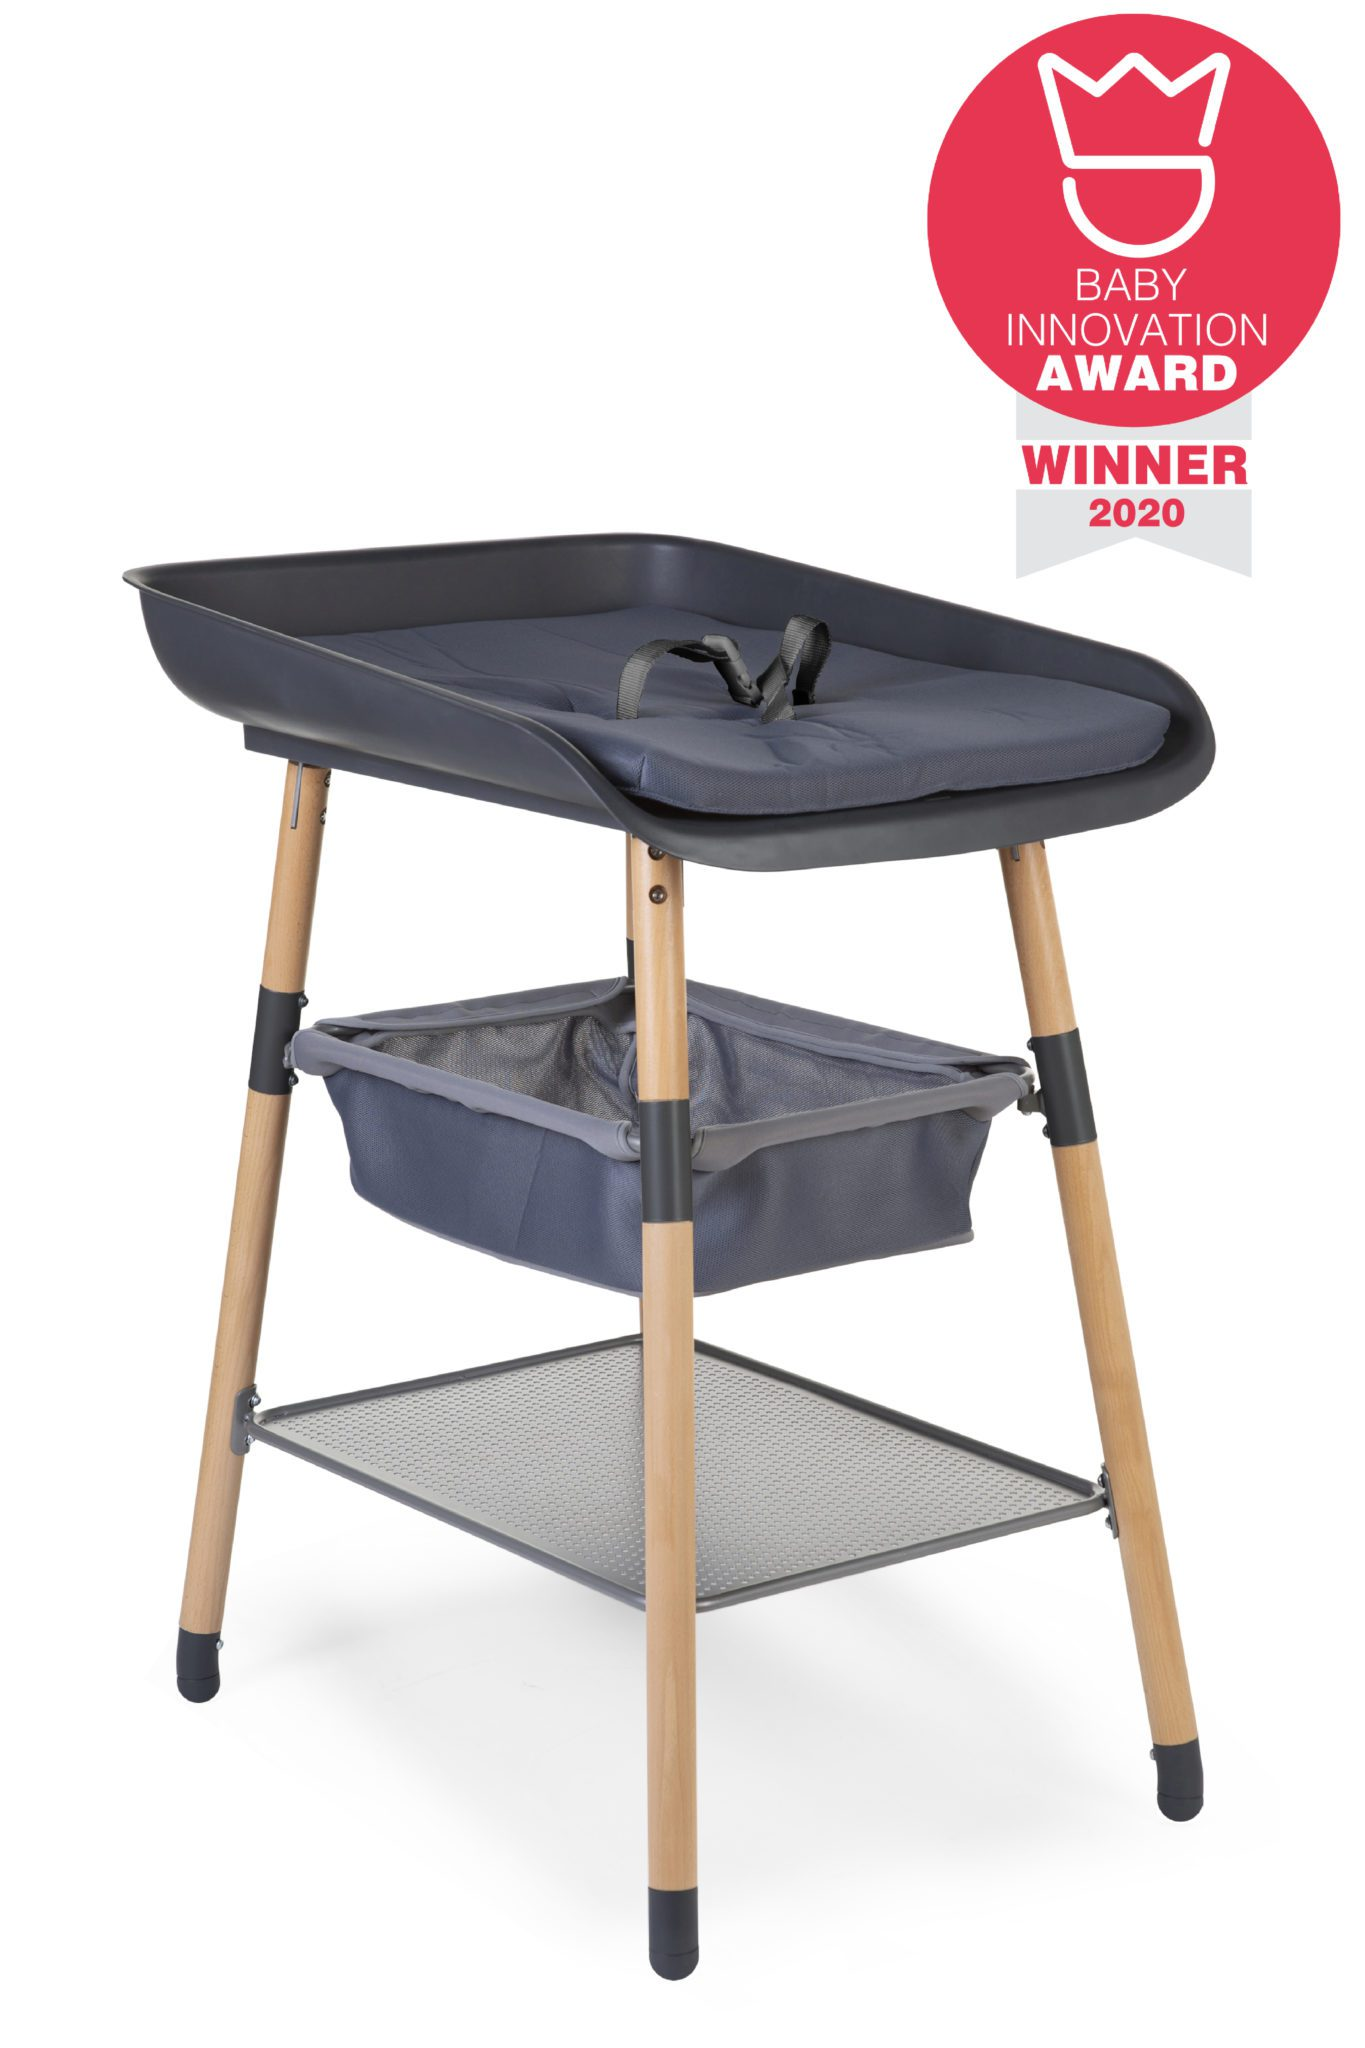 New Evolux Changing Table wins Baby Innovation Award